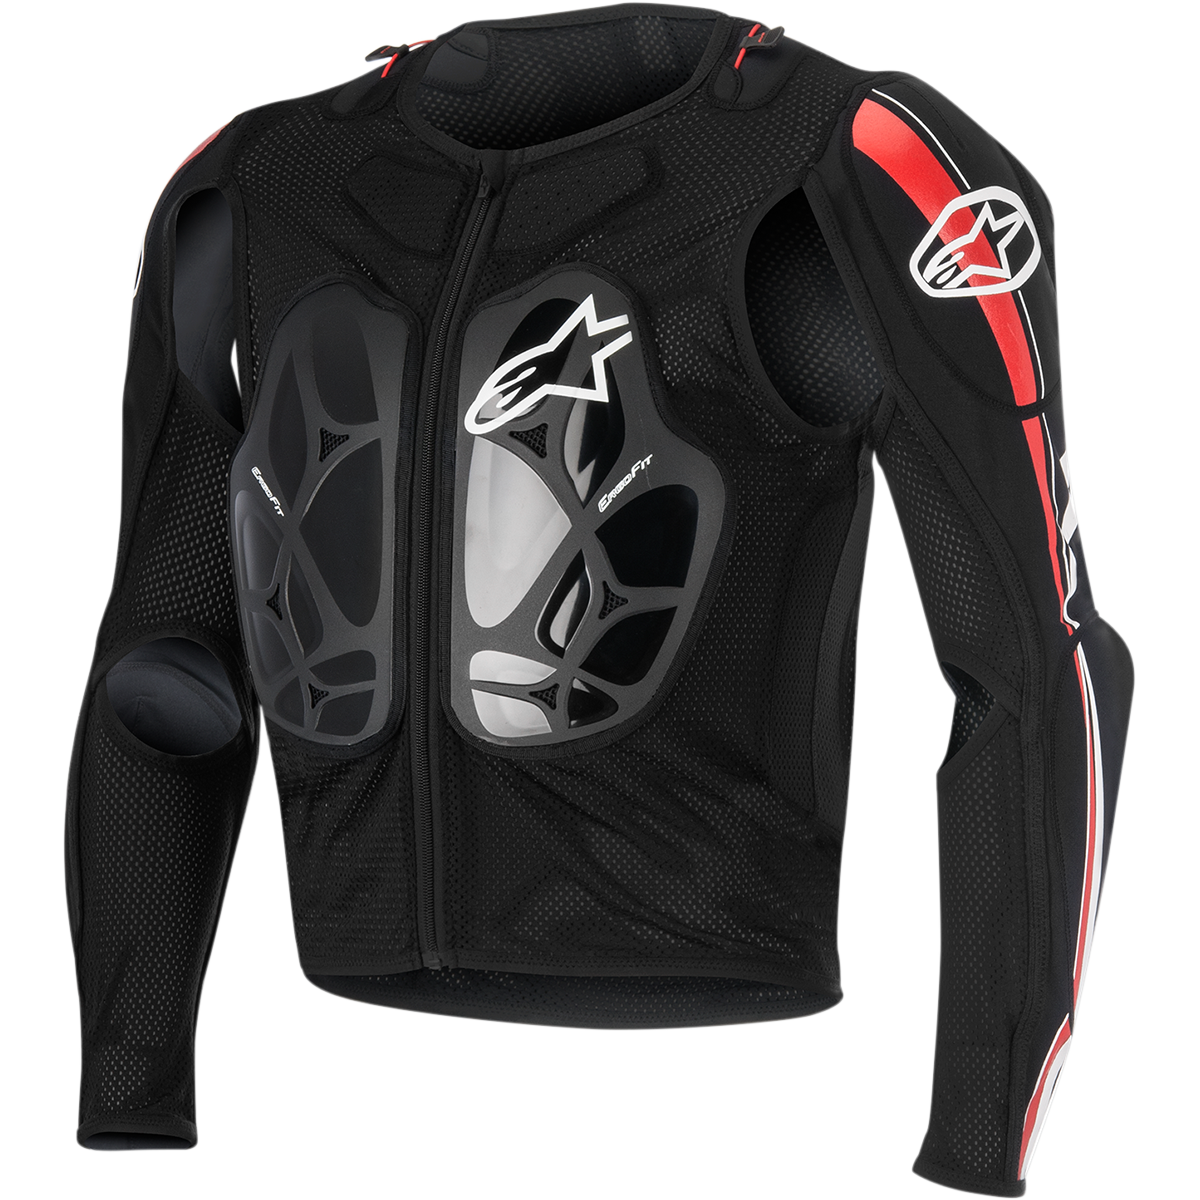 Bionic Pro Protection Jacket